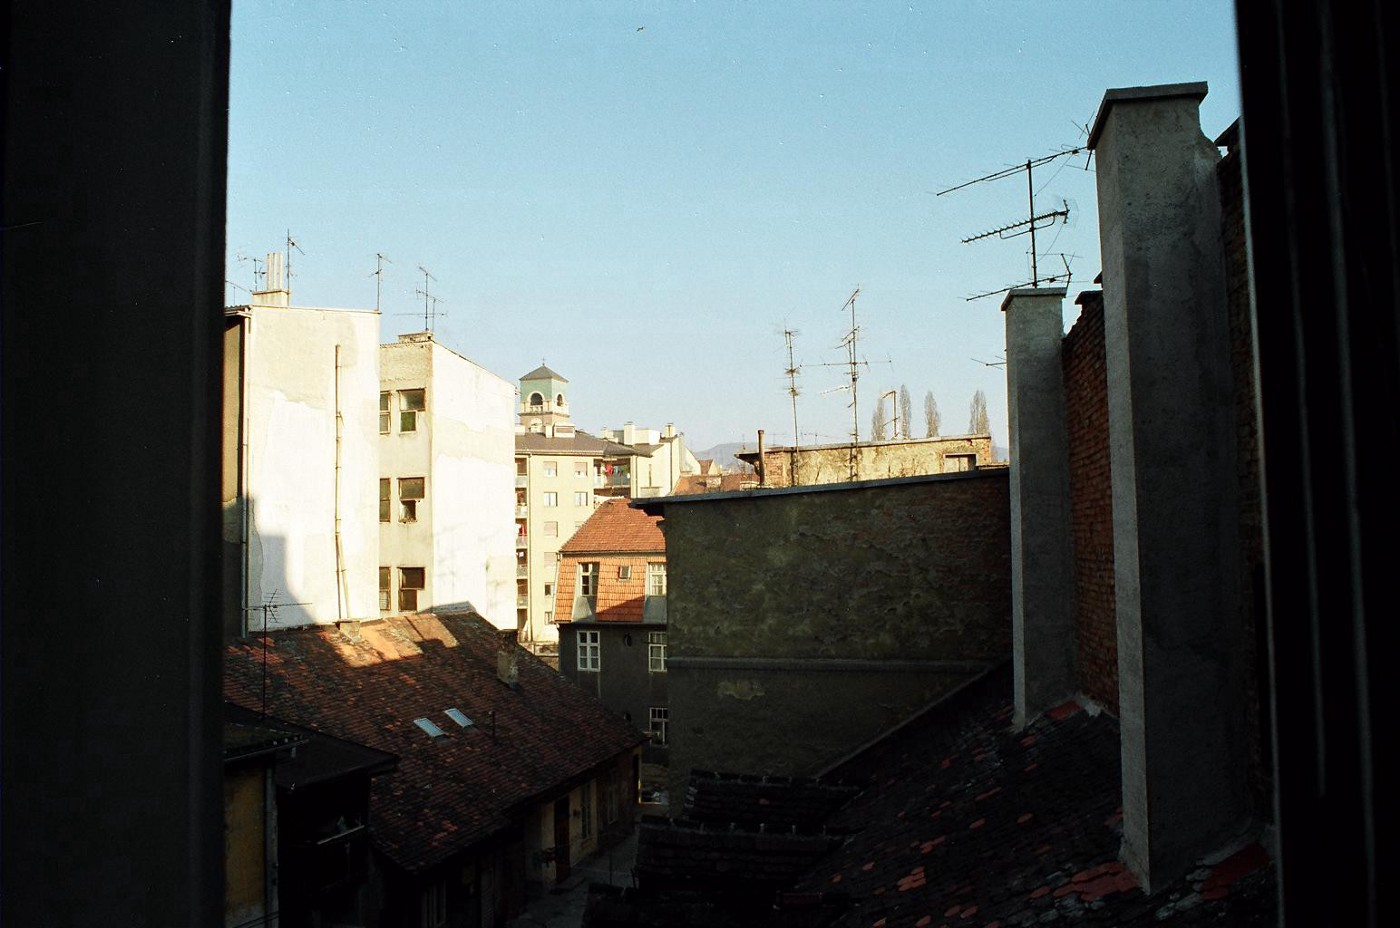 early 90s view of the courtyard from the apartment i grew up in, the green top of a church tower can be seen in the distance, many TV antennas against a pale blue sky on a sunny day.